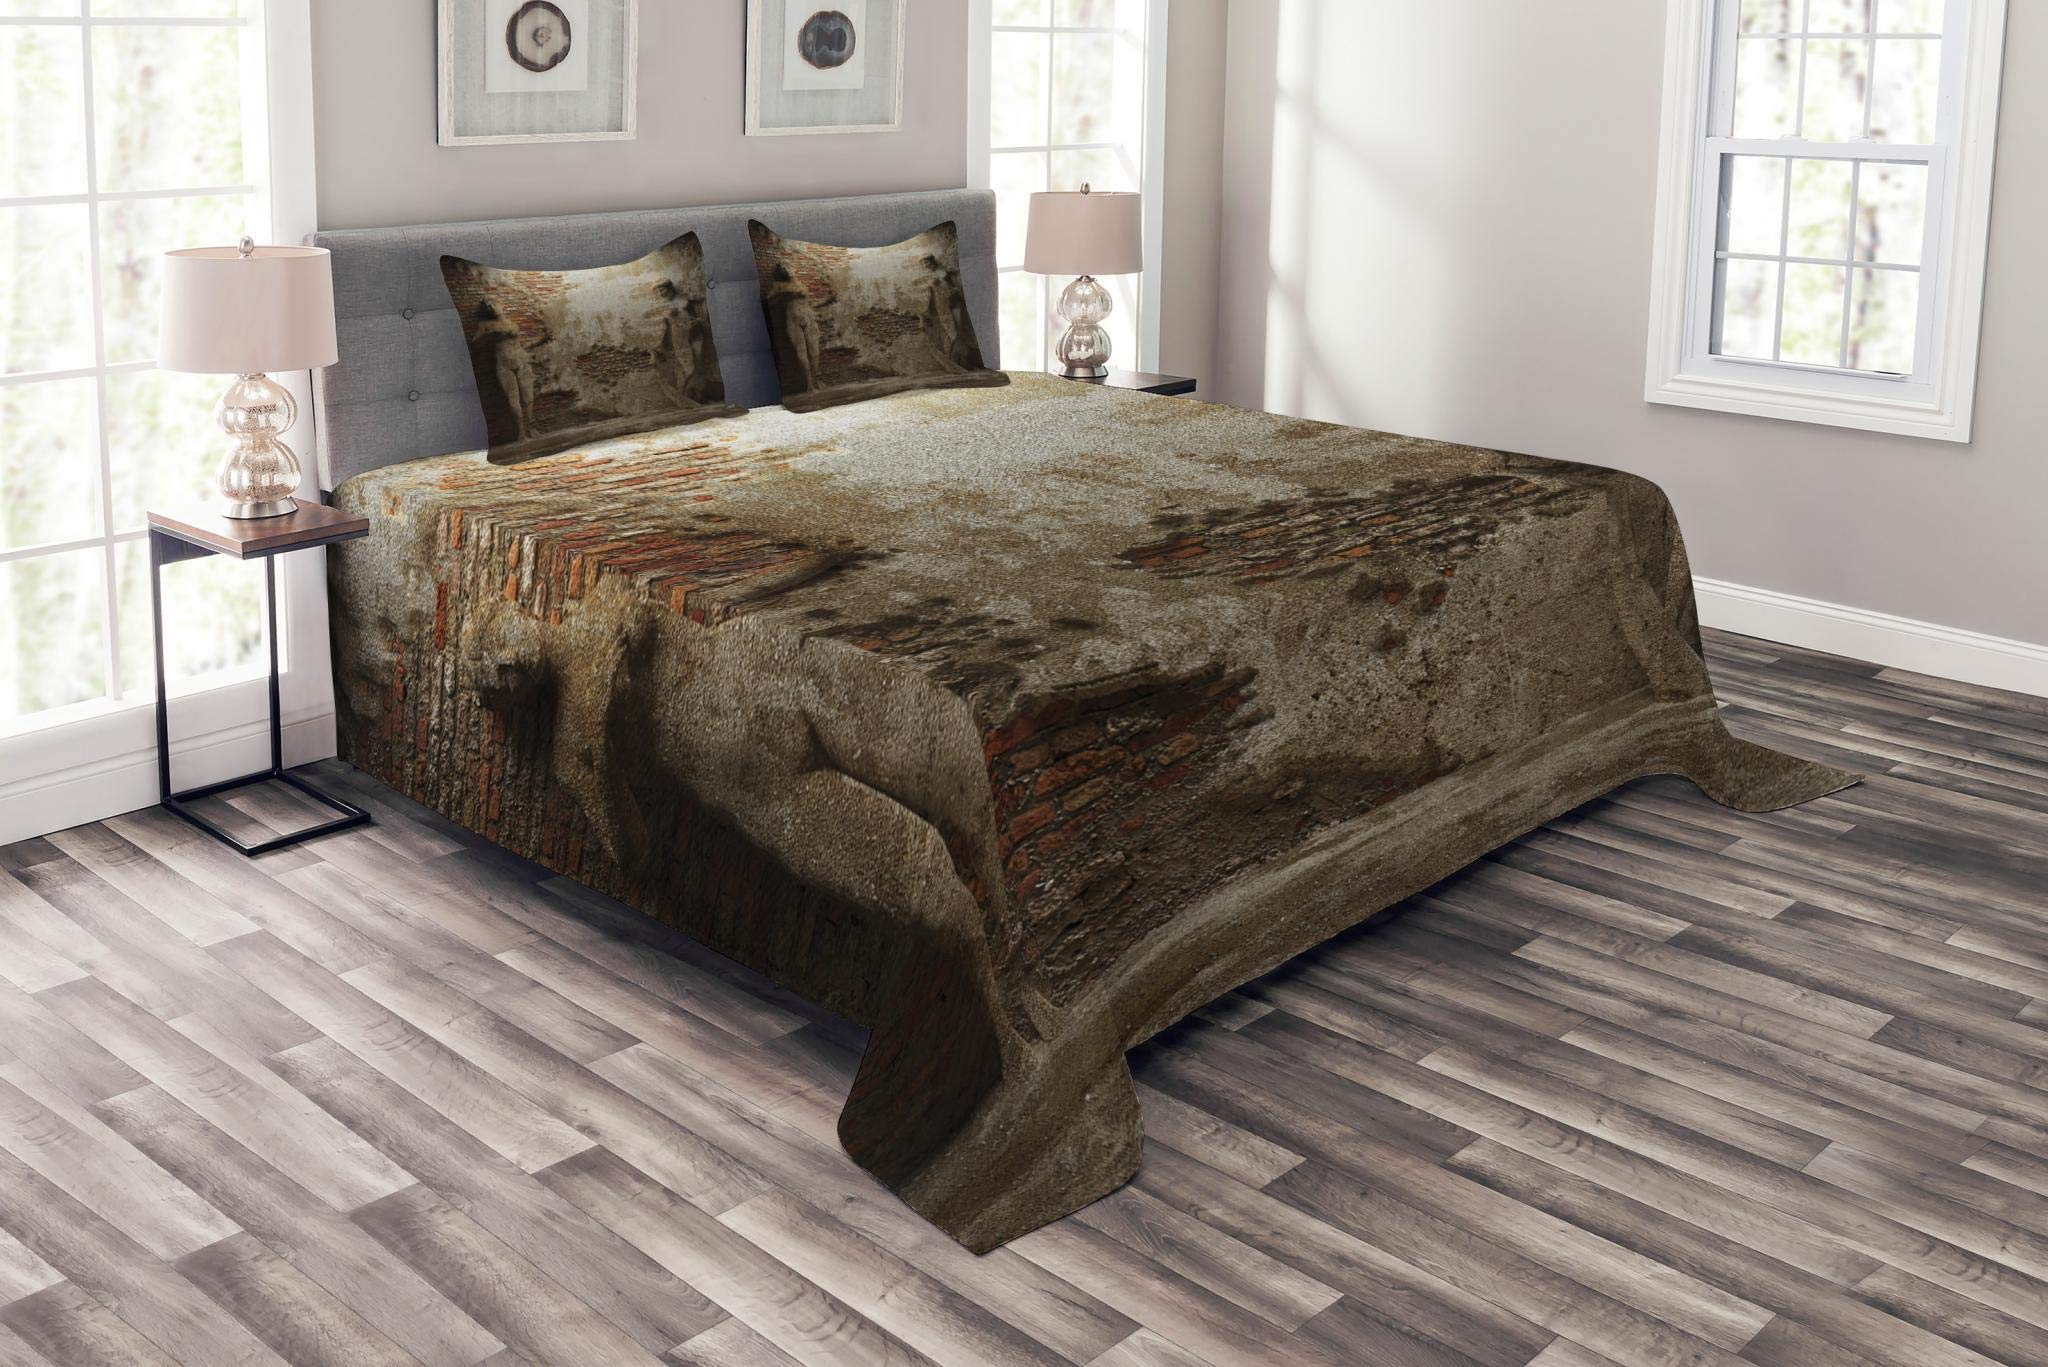 Lunarable Sculptures Bedspread Set Queen Size, Antique Women Sculptures on Concrete Cement Wall Damaged History Interior, Decorative Quilted 3 Piece Coverlet Set with 2 Pillow Shams, Warm Taupe Orange